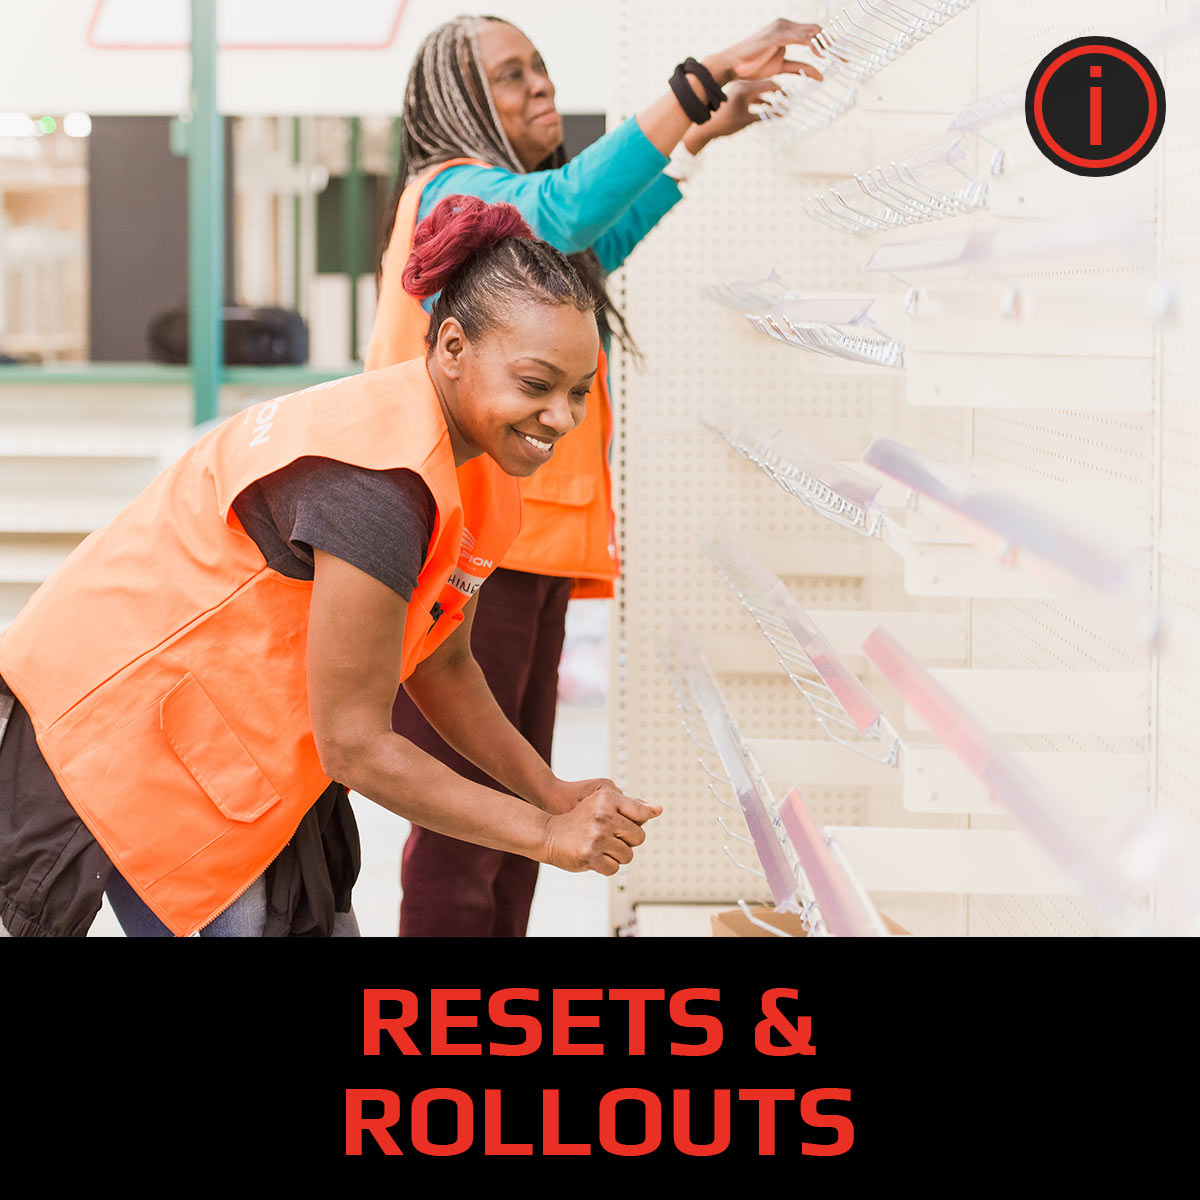 Resets & Rollouts